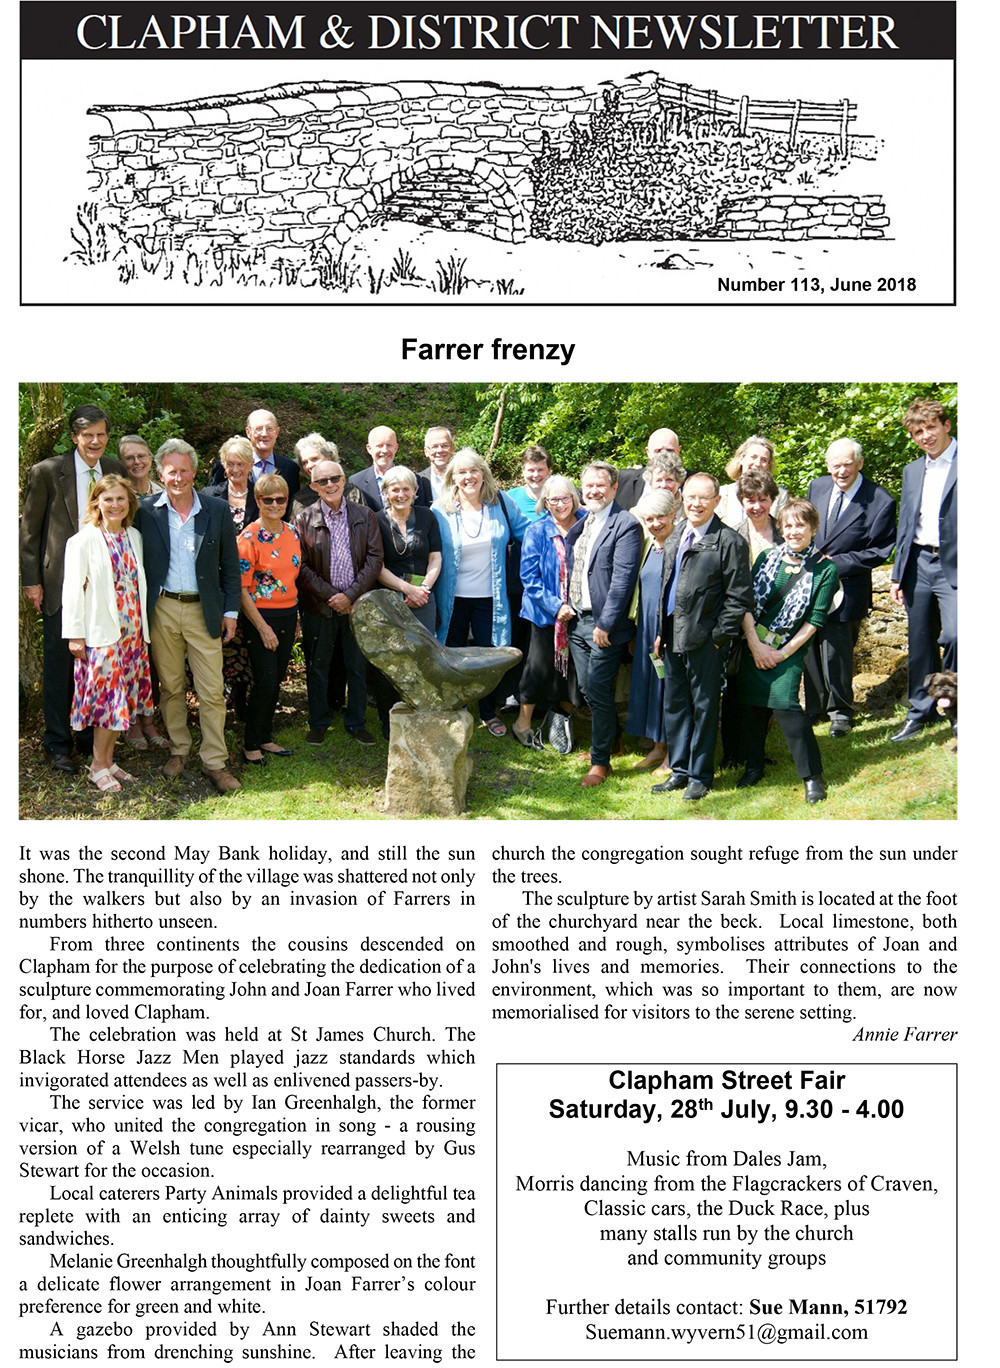 clapham-newsletter-113-june-2018-1